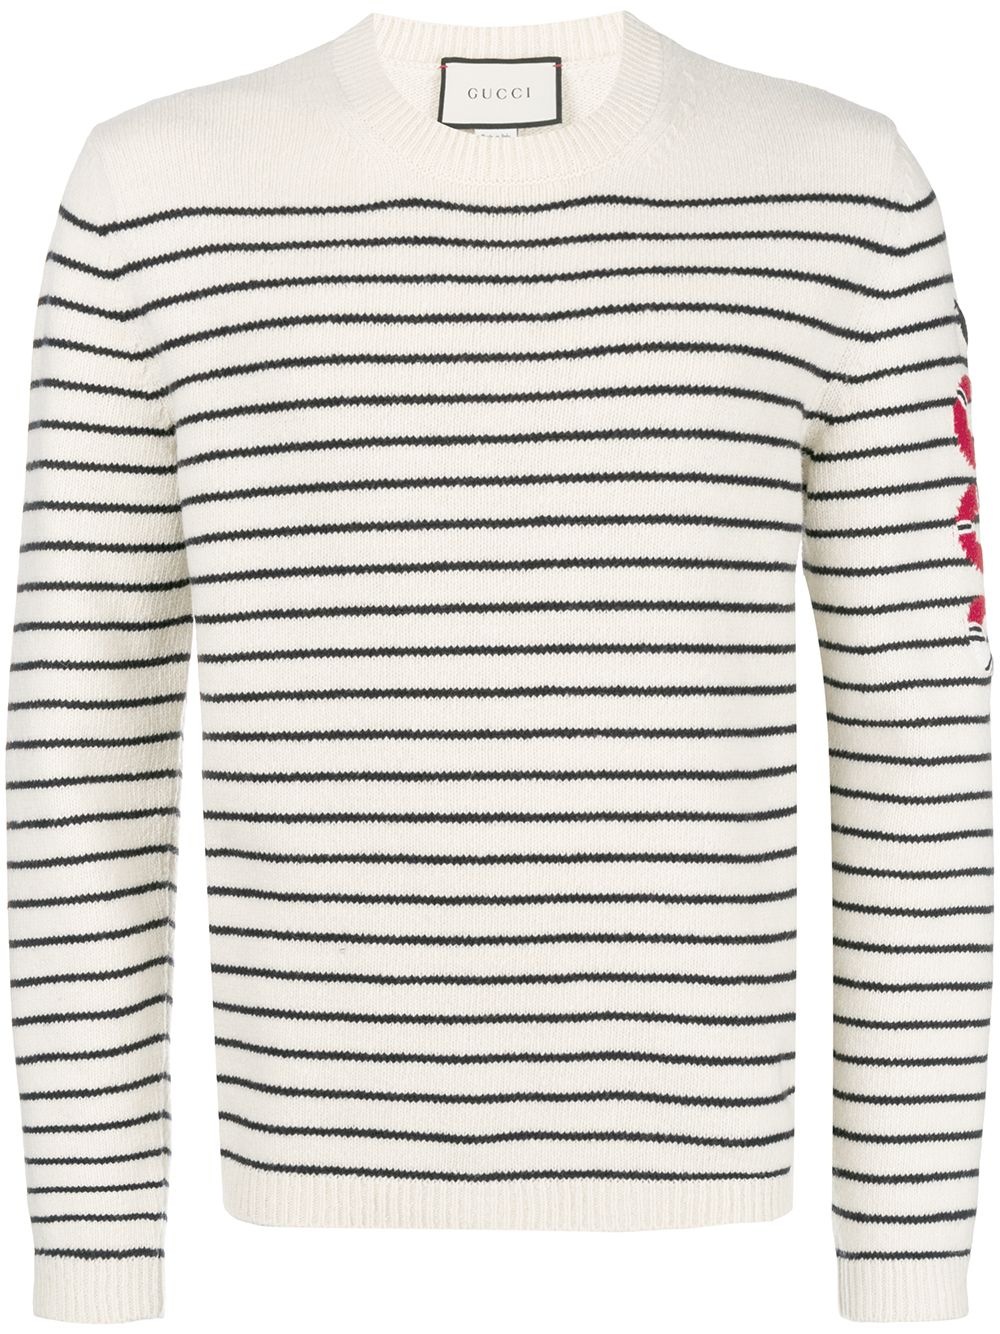 a1de3aab9 Gucci Striped cashmere knit sweater – SUPBOXLAB